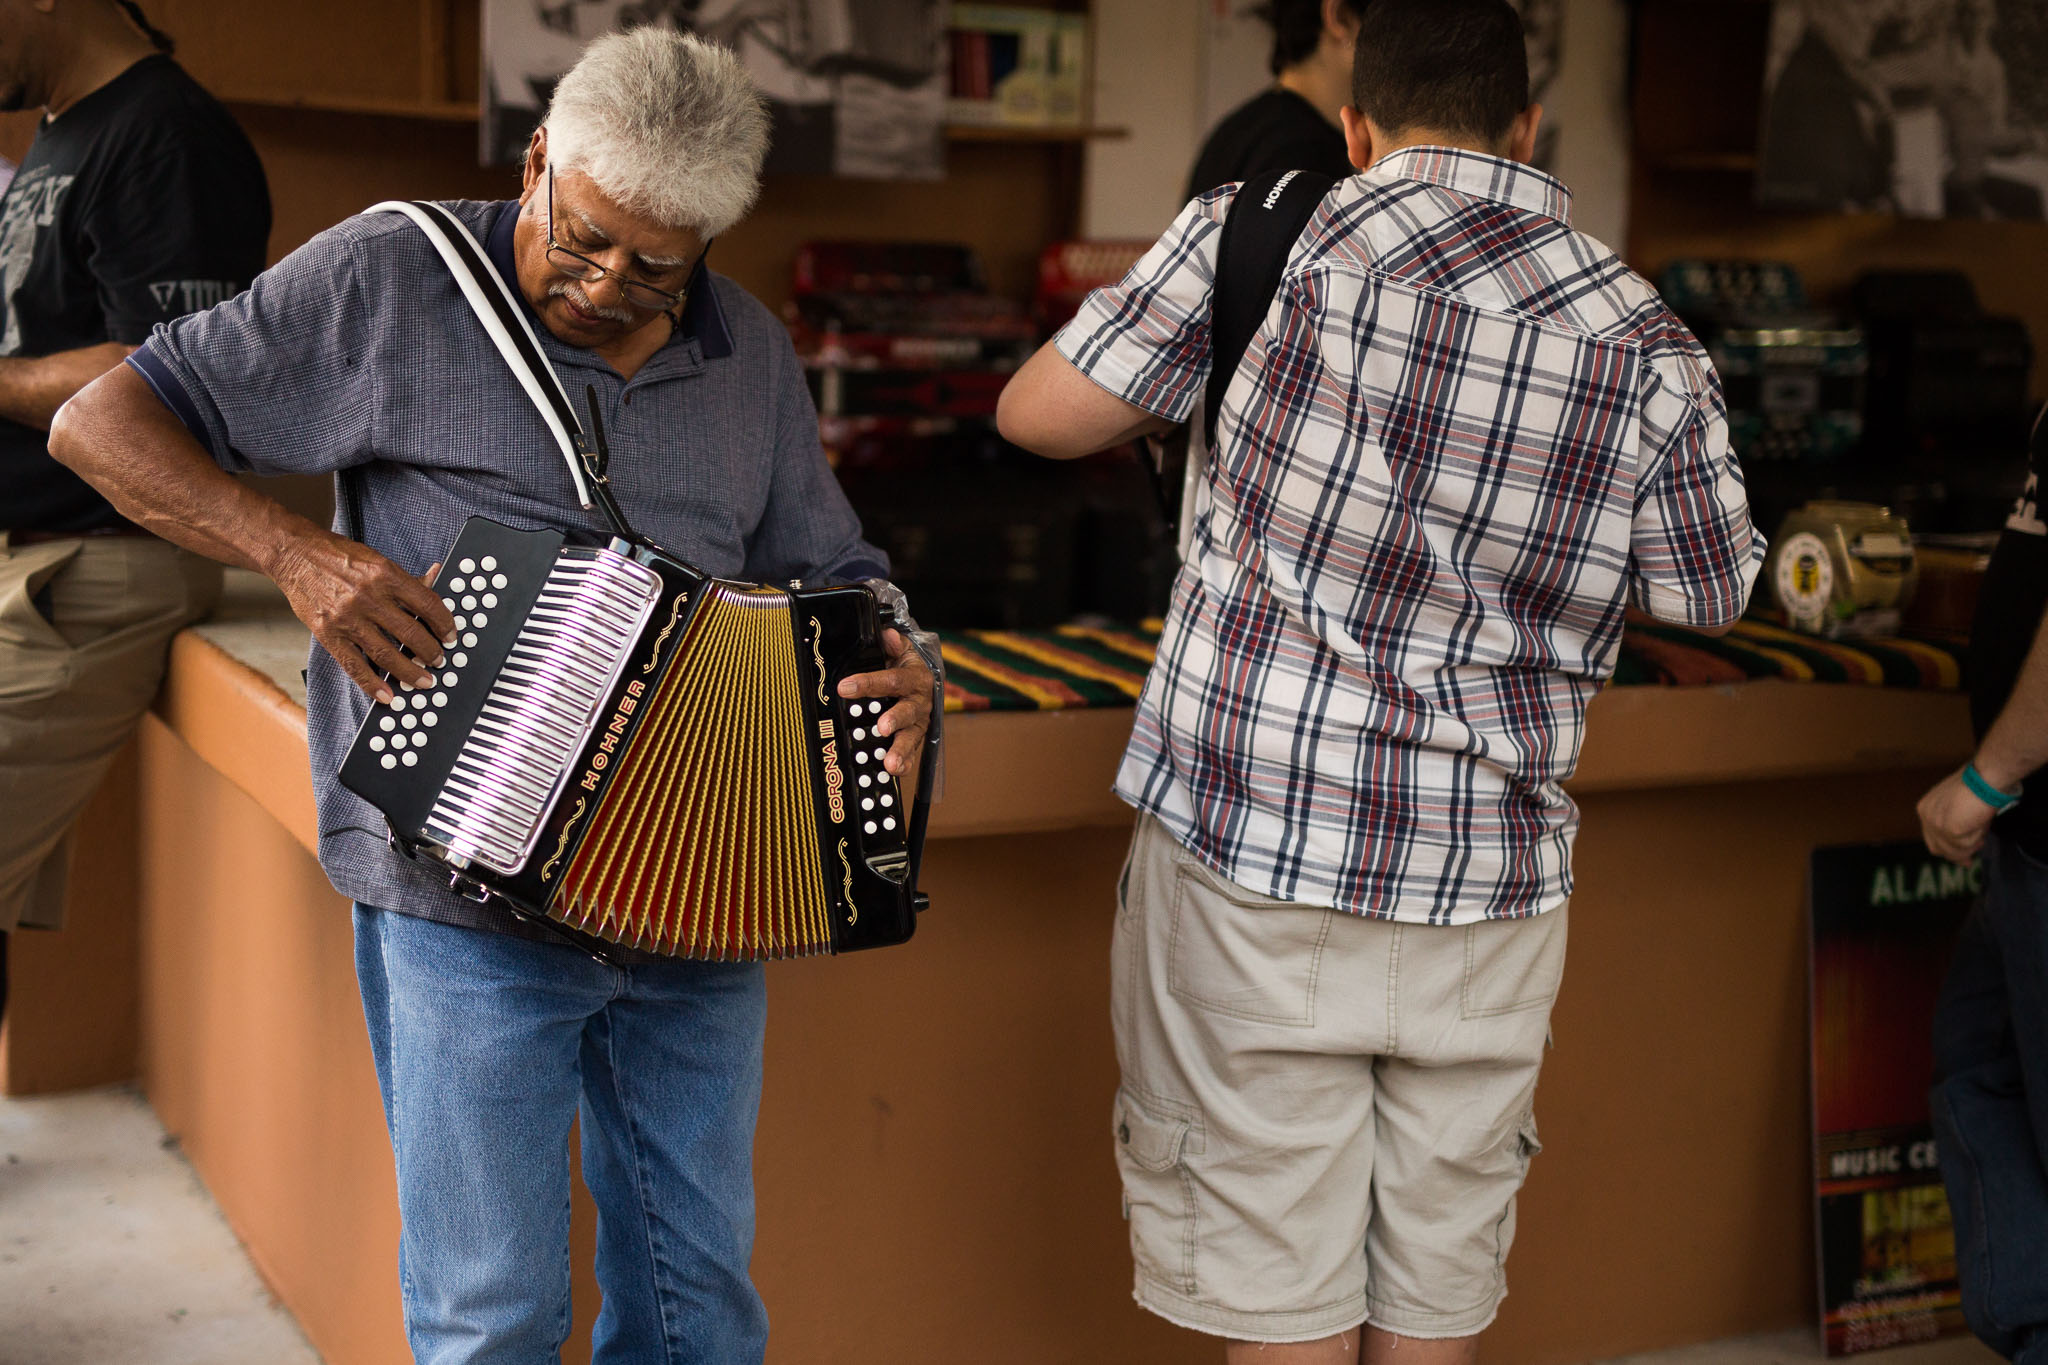 Lane Fuentes tries out an accordion from a pop-up shop from Alamo Music Store. Photo by Scott Ball.